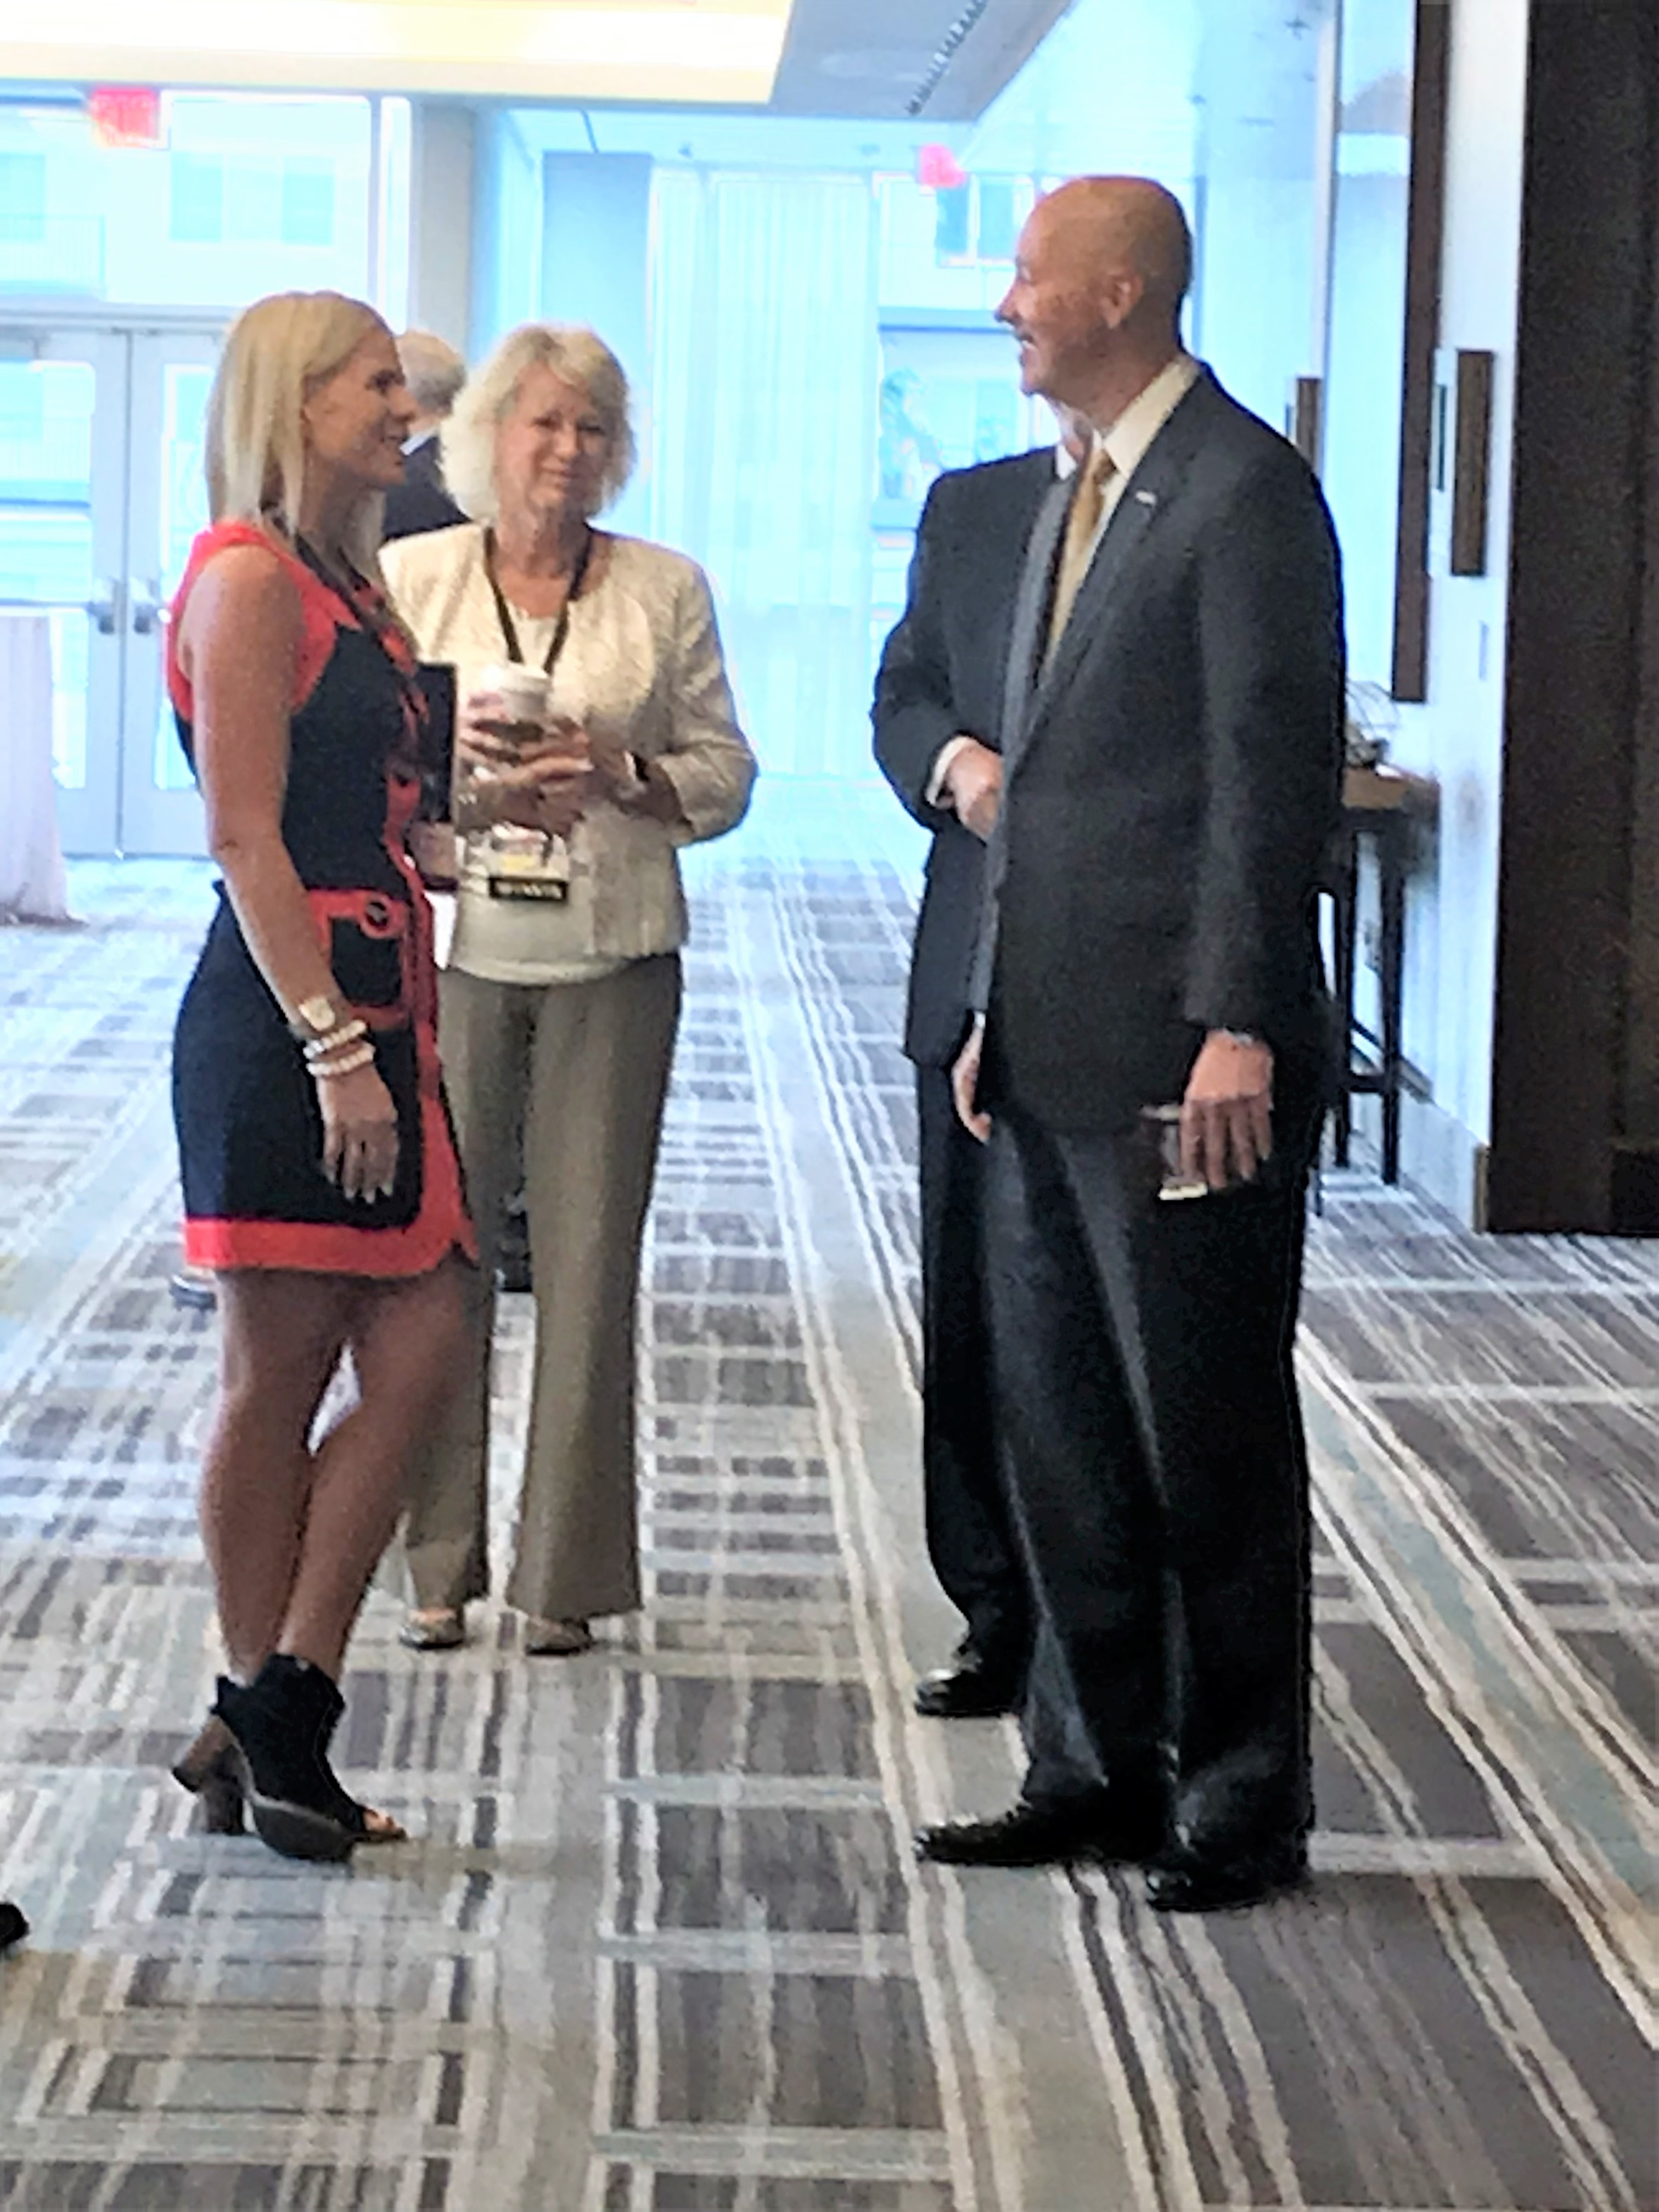 Encore's Kim Herzog meeting Nebraska Governor Pete Ricketts at ACE Conference